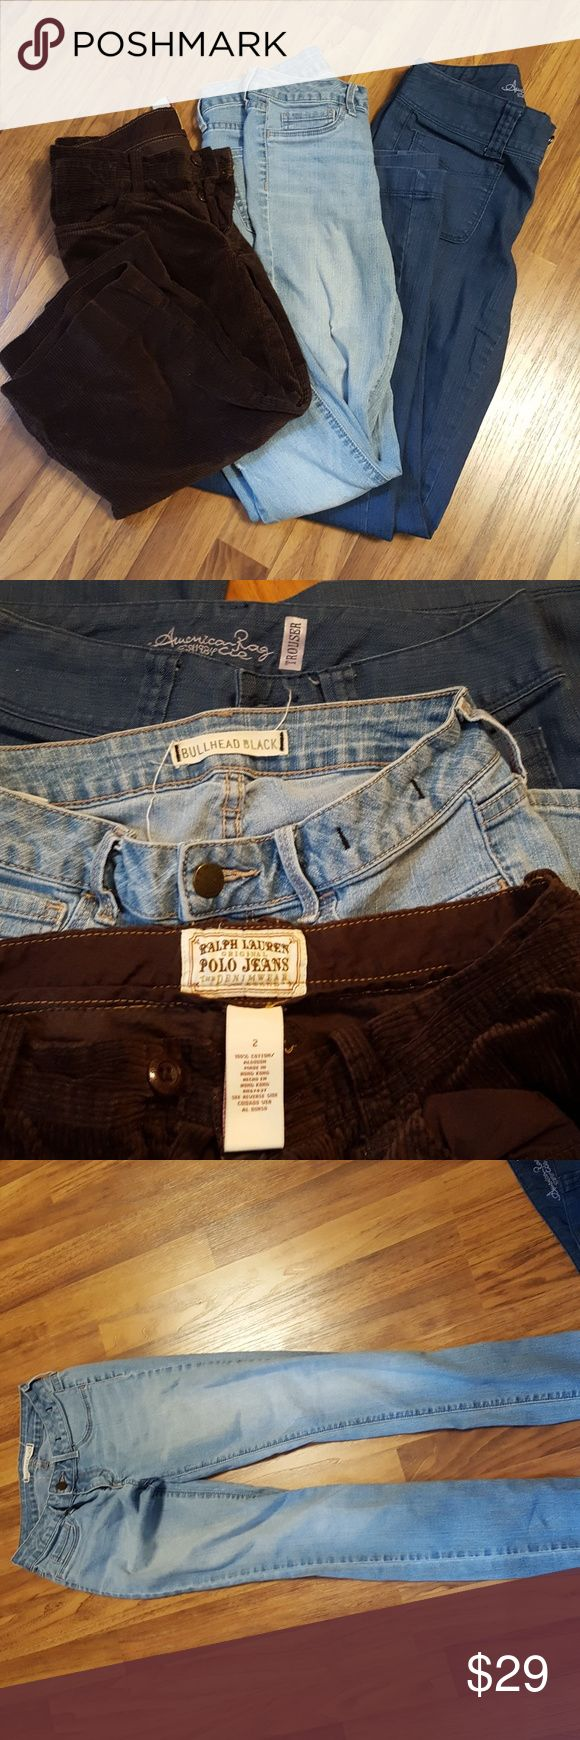 Bundle American Rag , Polo Jeans and Bullhead Blac American Rag Trouser size 1R Like New! Bullhead Black Jegging Size 3 but fit like size 2 good condition Ralph Lauren Polo jeans cropped brown valvet  size 2 like New! They all fit size 2 American Rag Jeans Flare & Wide Leg